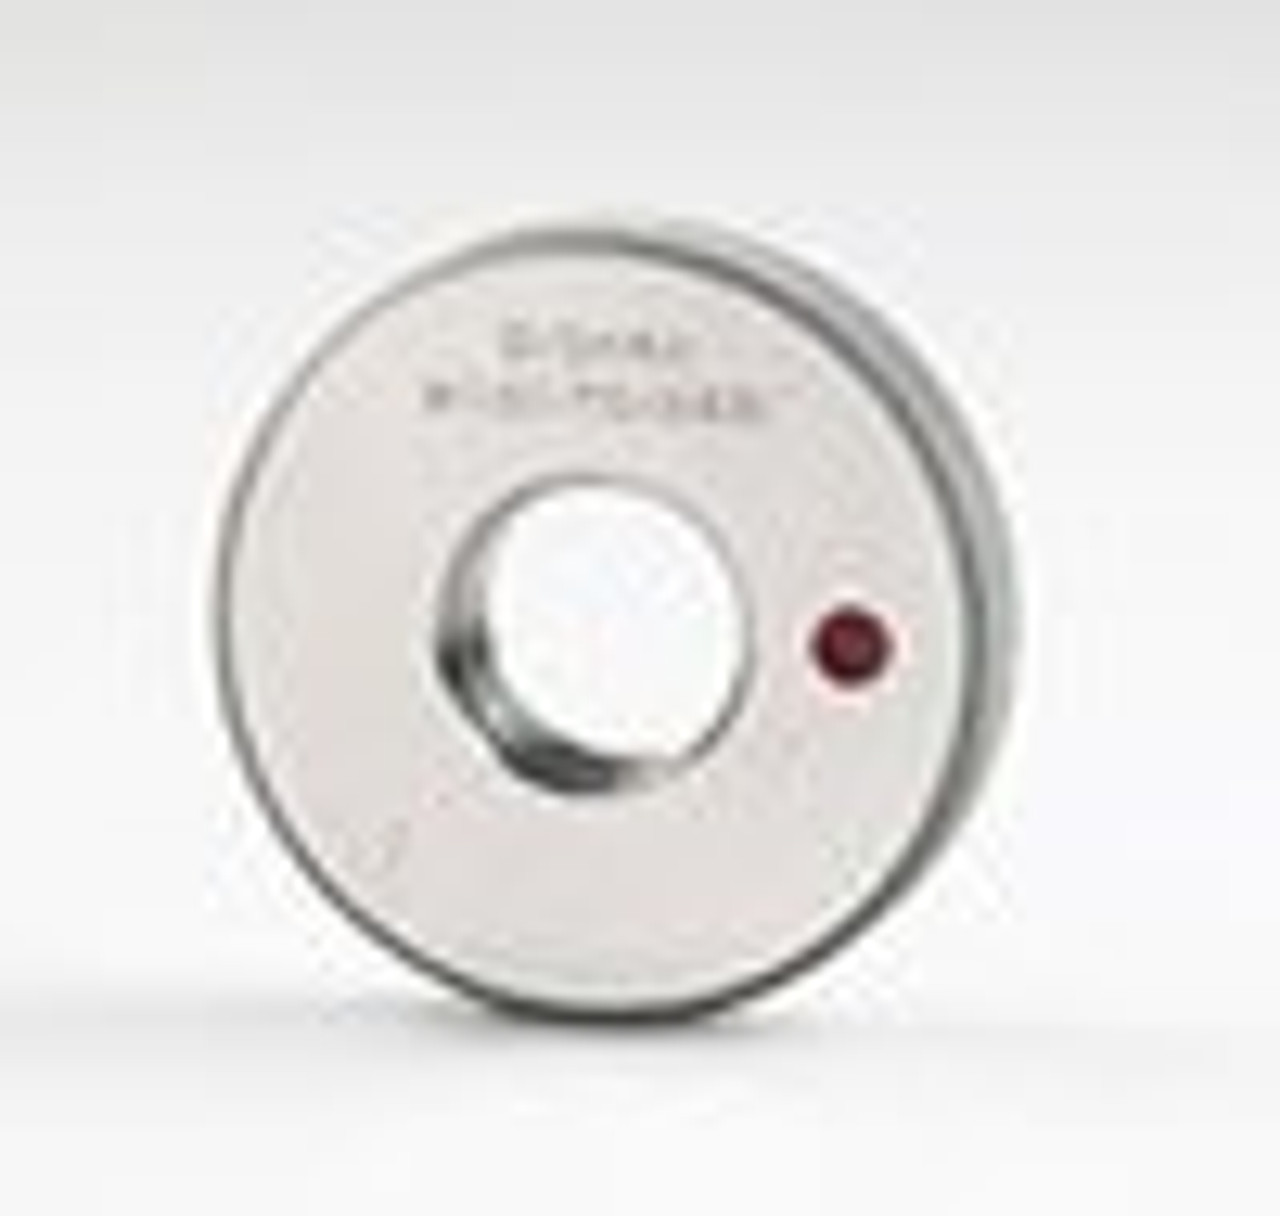 """BSW 1-1/2"""" - 6 NO GO Thread Ring Gauge - (BSW1-1/2RG-NG)"""